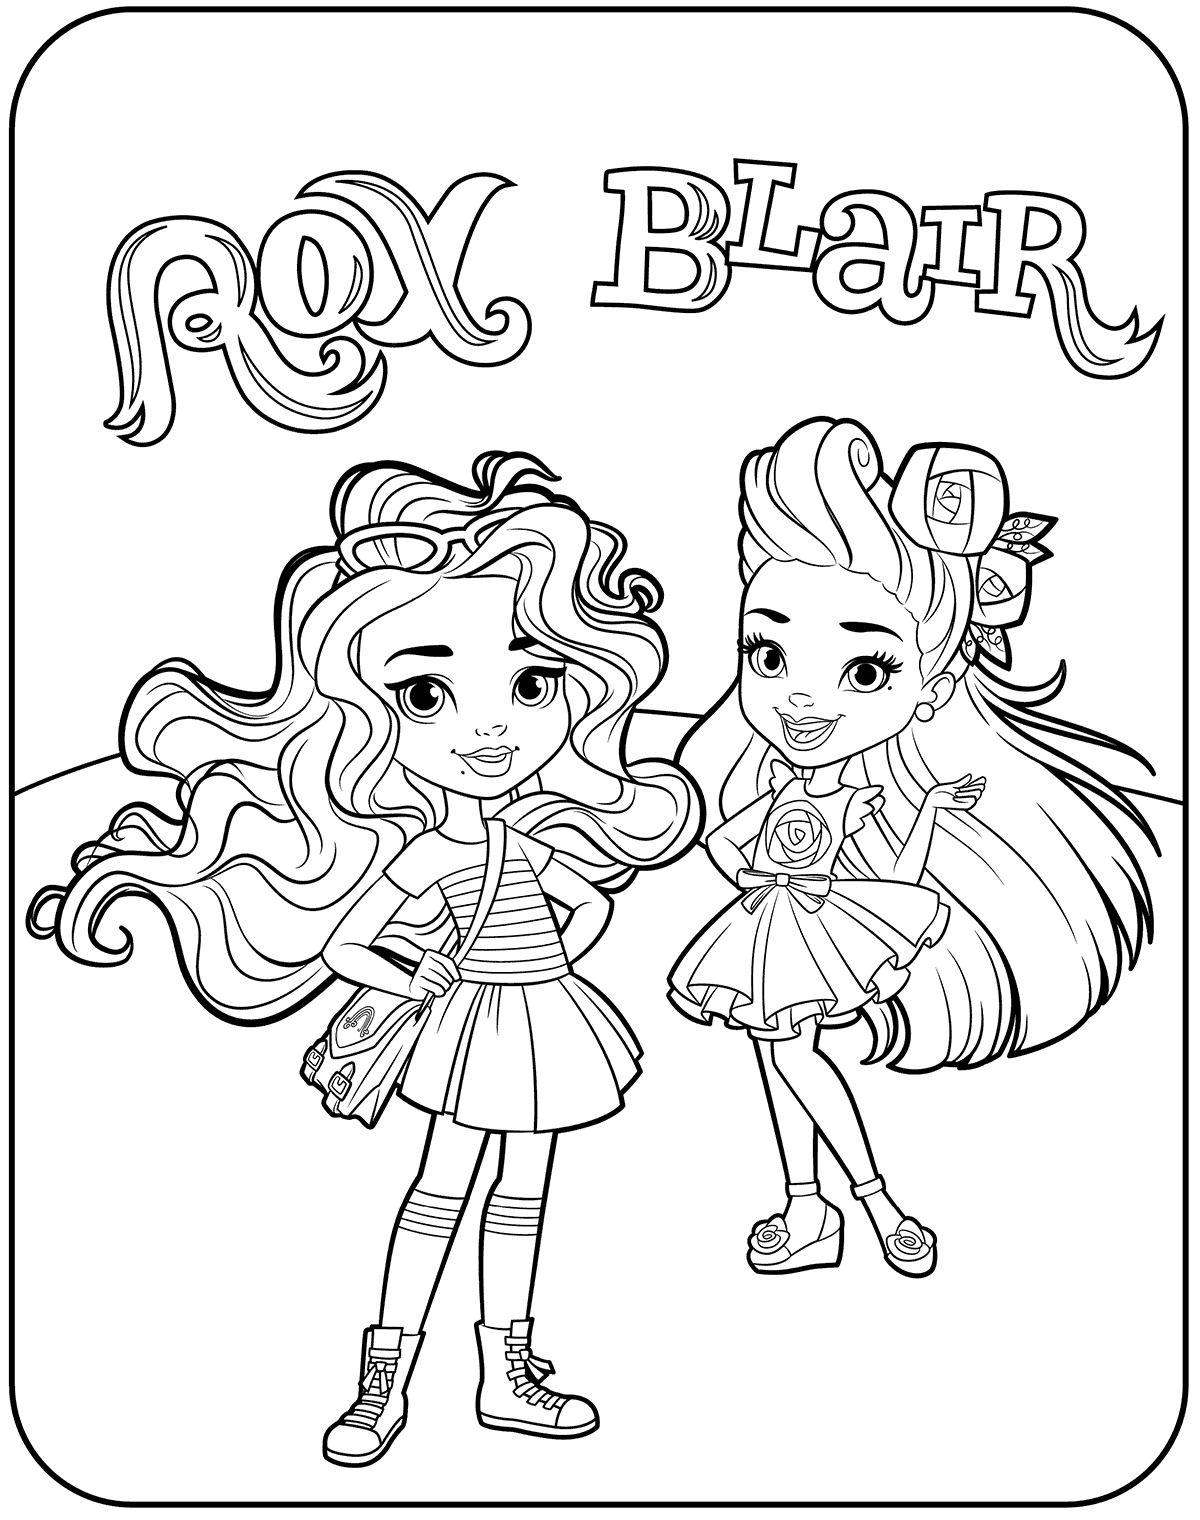 Blair And Rox From Sunny Day Coloring Pages